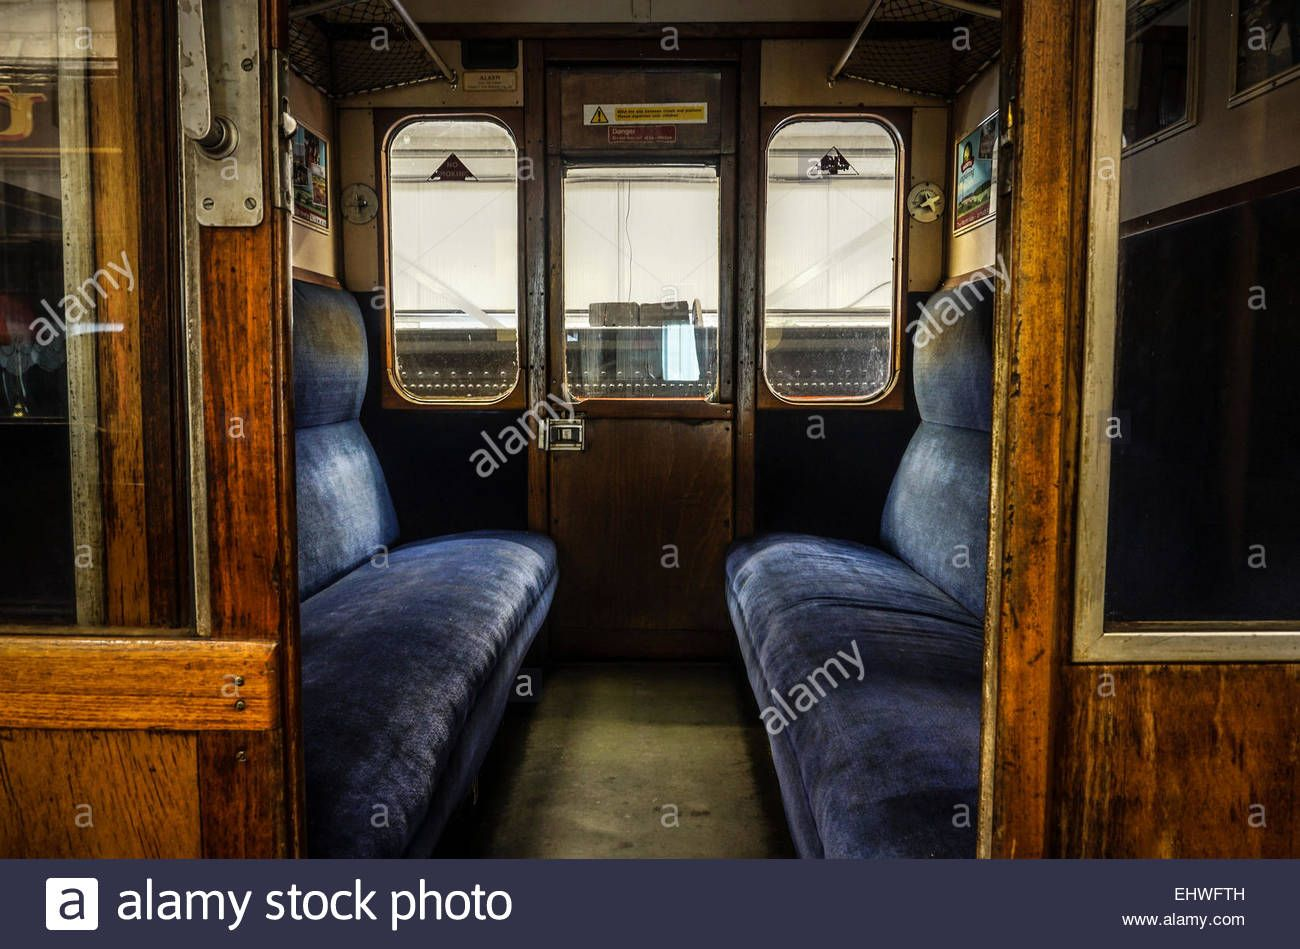 interior view of a compartment inside an old british railway carriage british. Black Bedroom Furniture Sets. Home Design Ideas